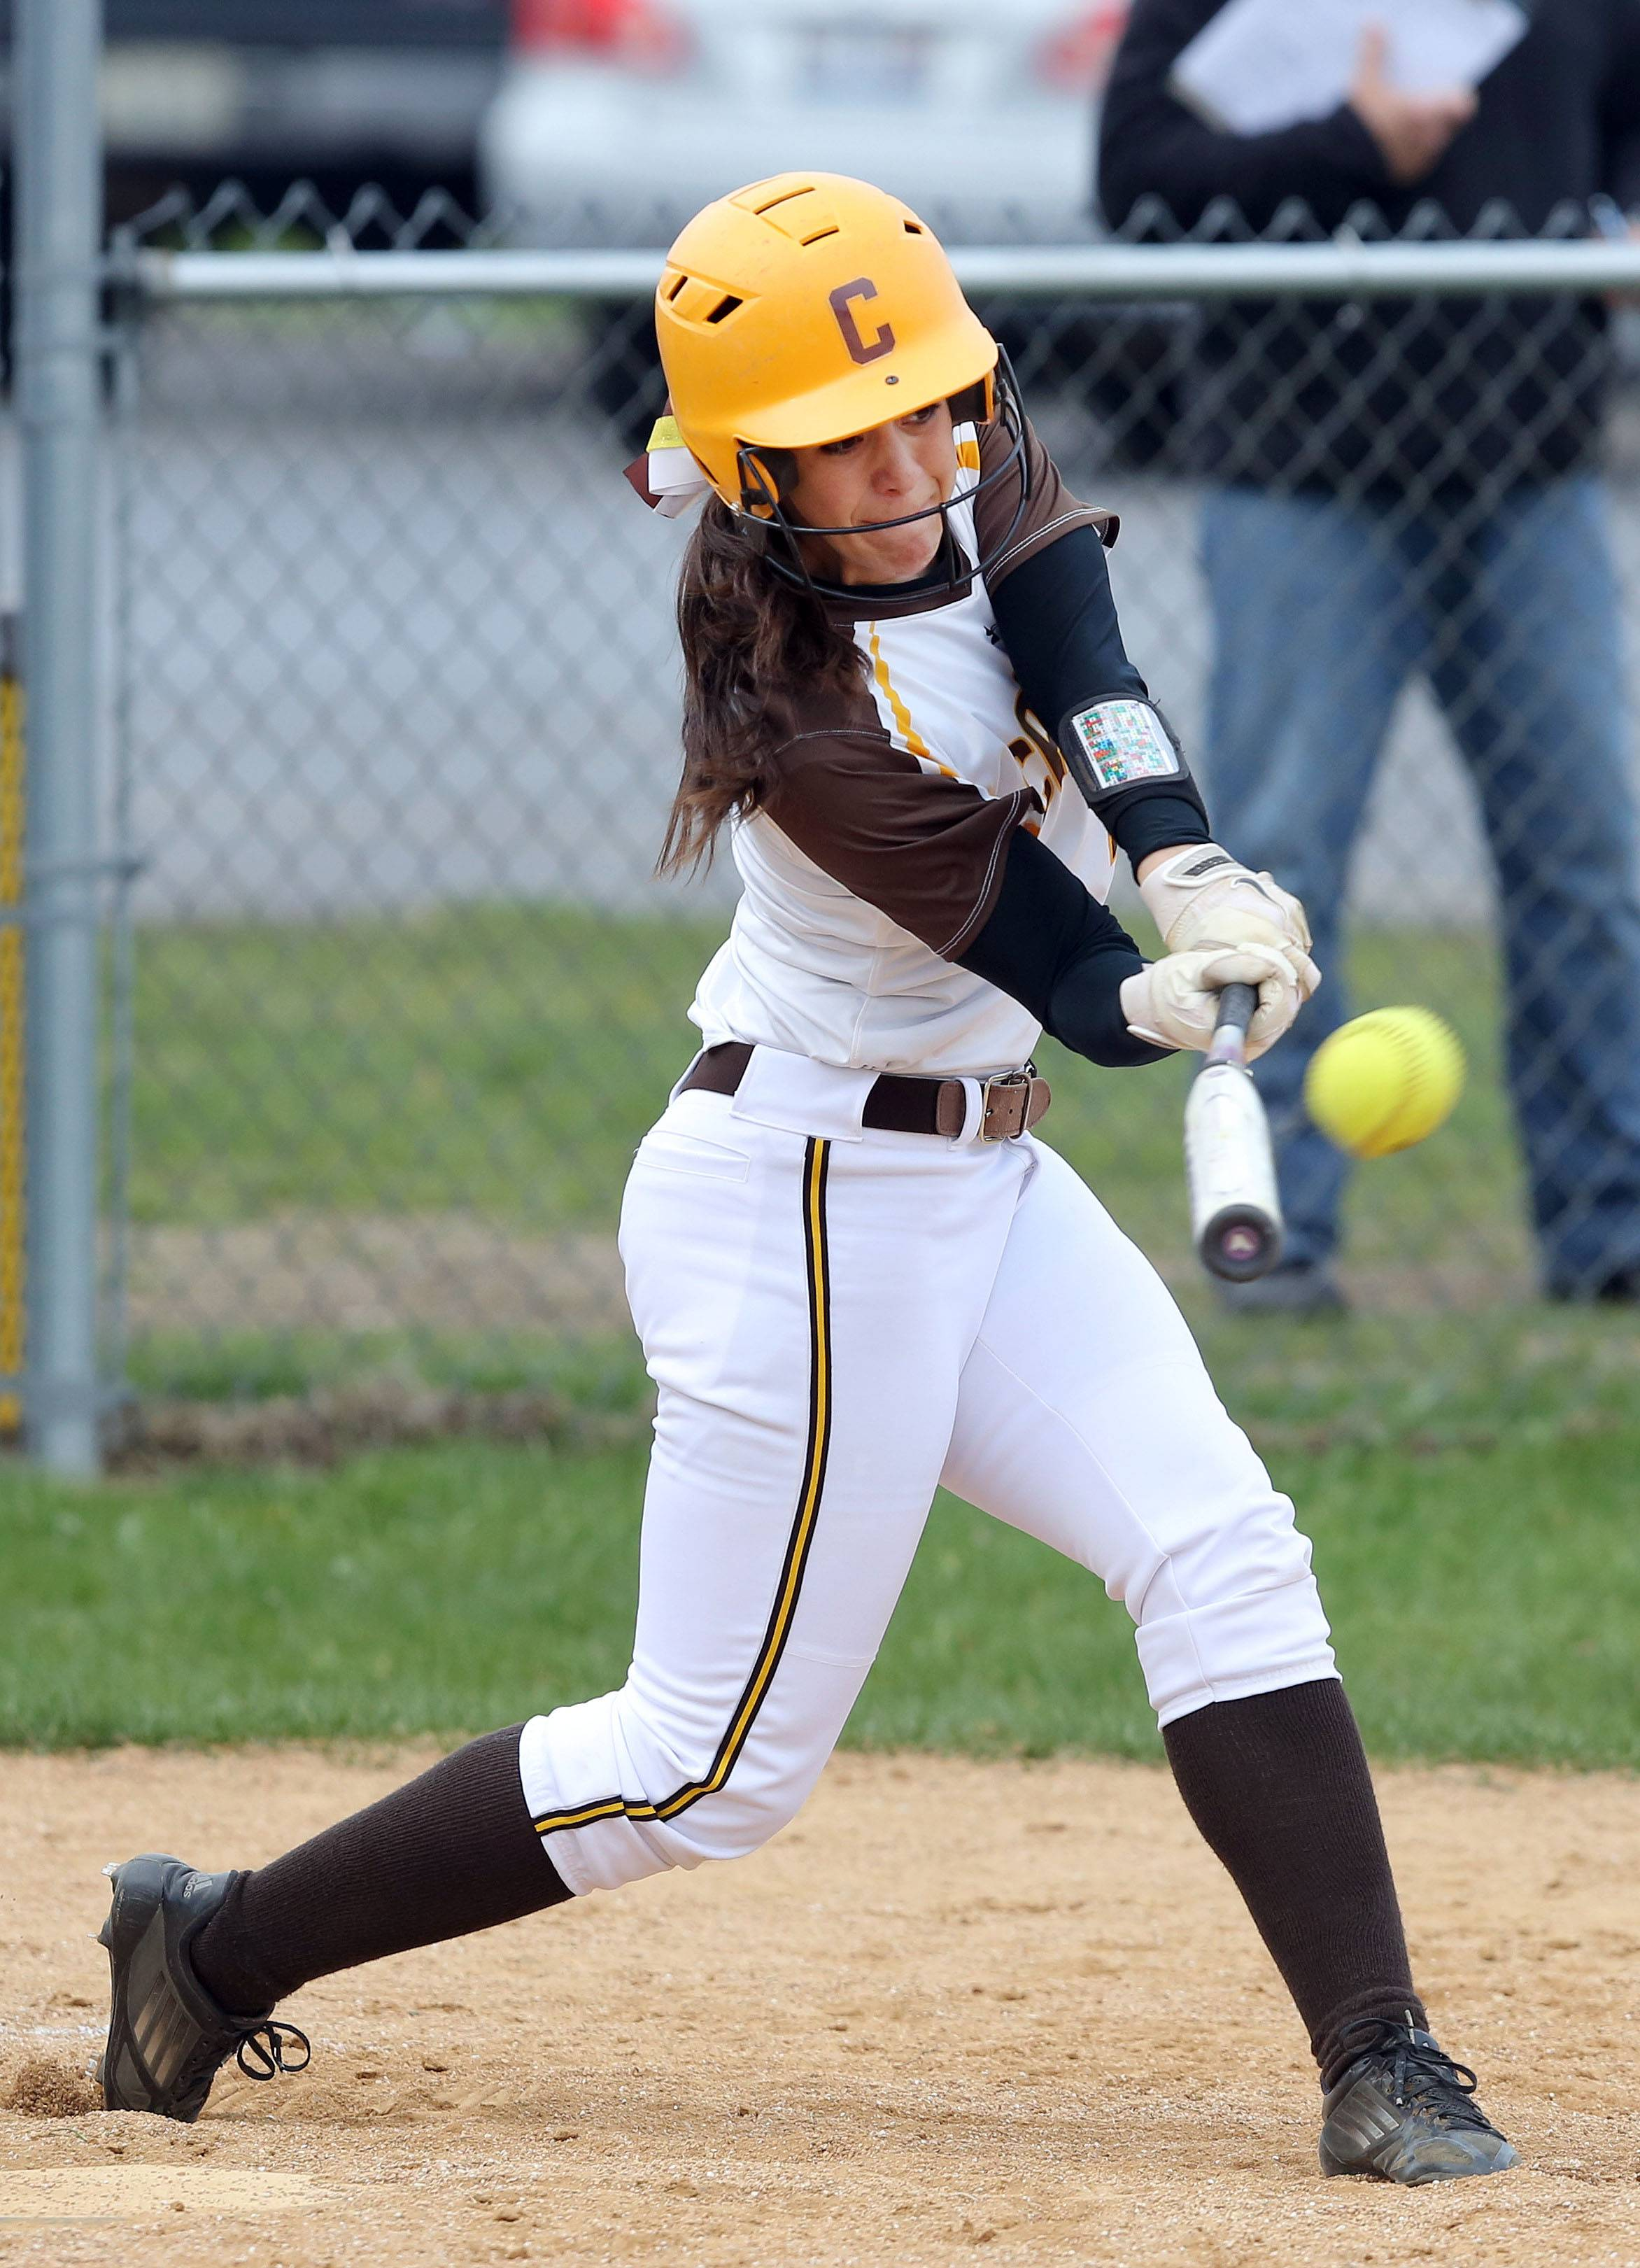 Carmel's Kathleen Felicelli connects for a 3-run homer during their game against Nazareth on Wednesday in Mundelein.